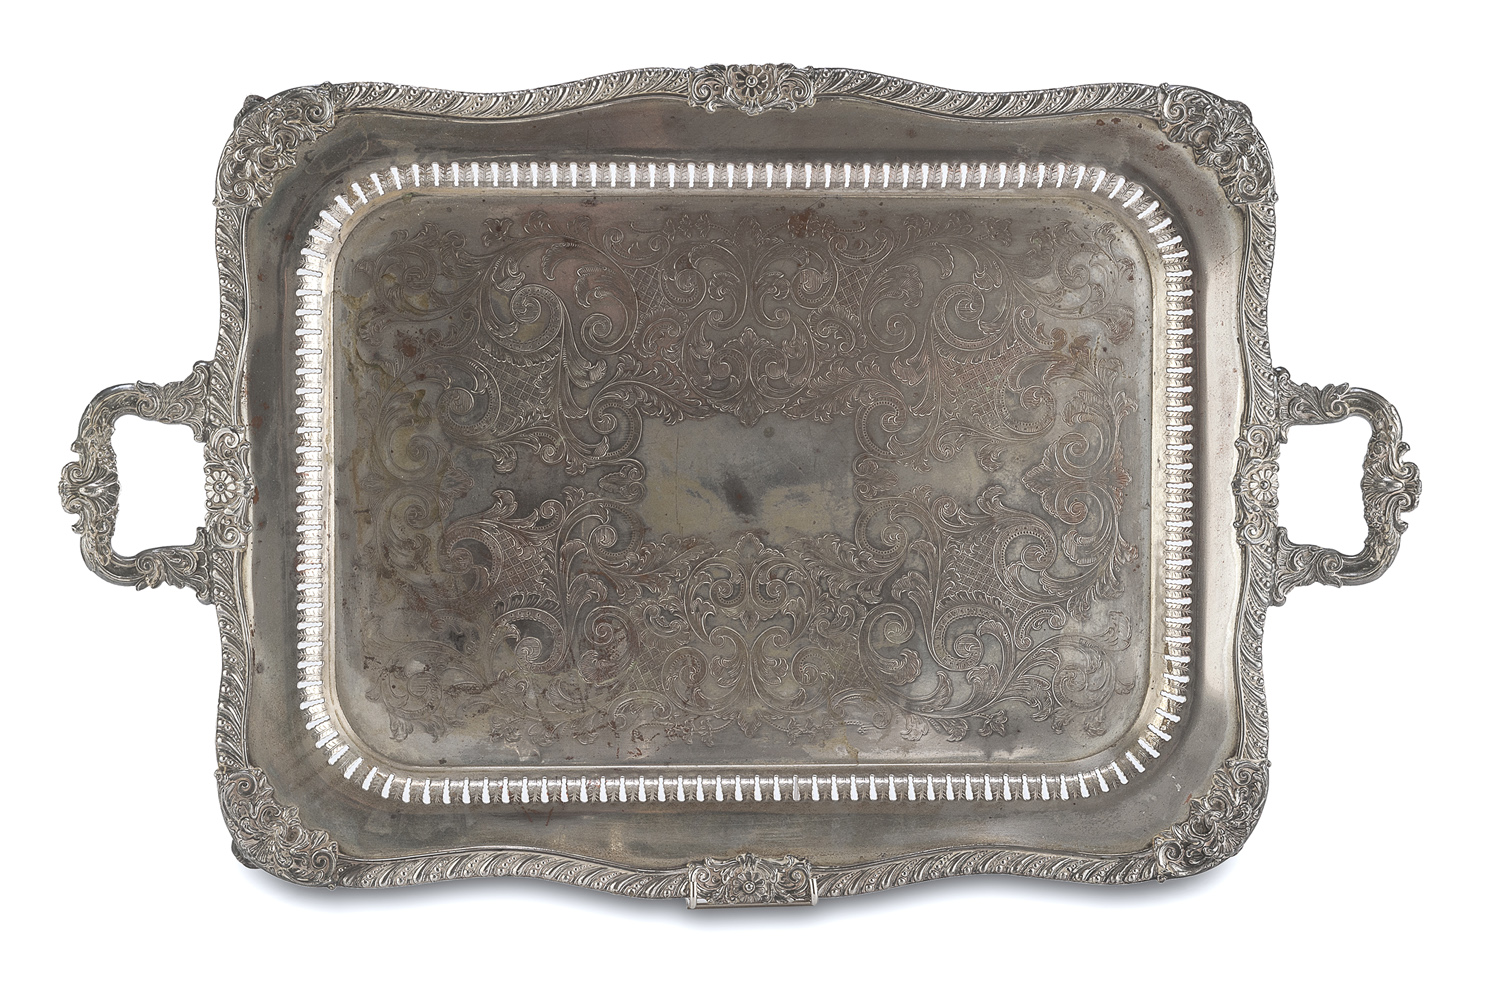 LARGE SILVER-PLATED TRAY EARLY 20TH CENTURY